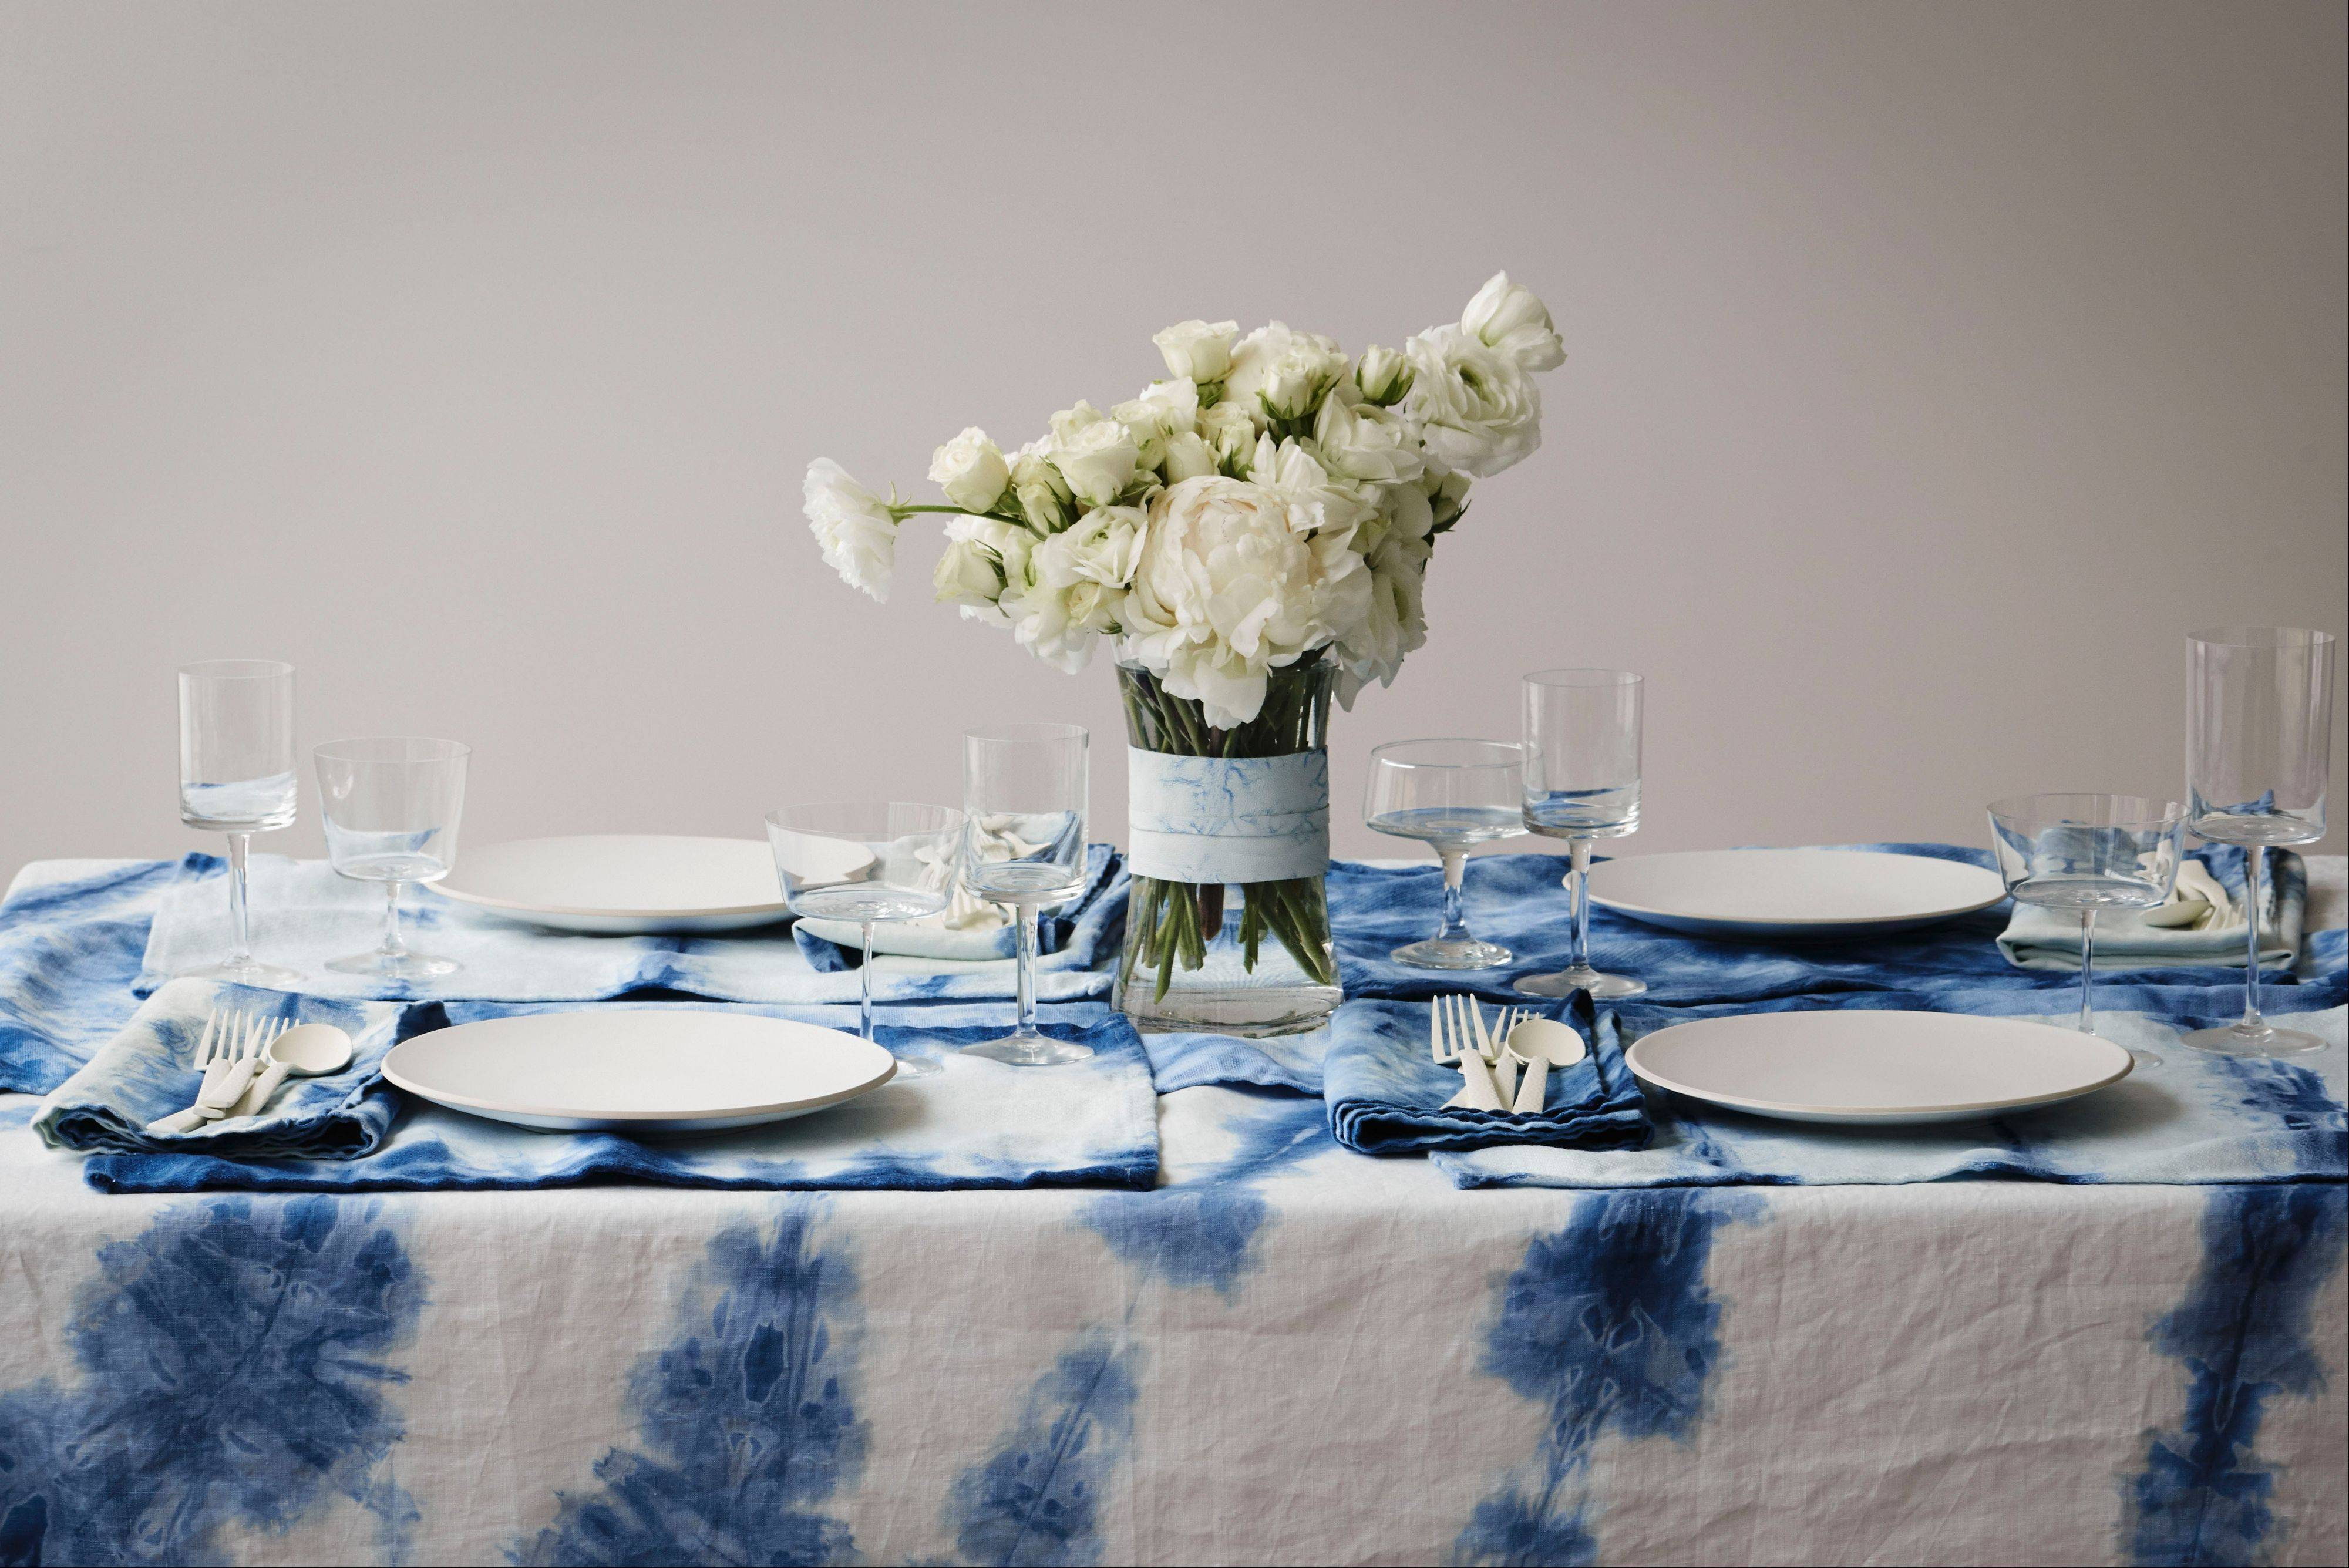 An OriShibori tablecloth, runner, place mats and napkins make for a striking table setting. From fabrics to iPhone cases and wallpaper, the ancient Japanese resist-dyeing technique of shibori has gone mainstream.